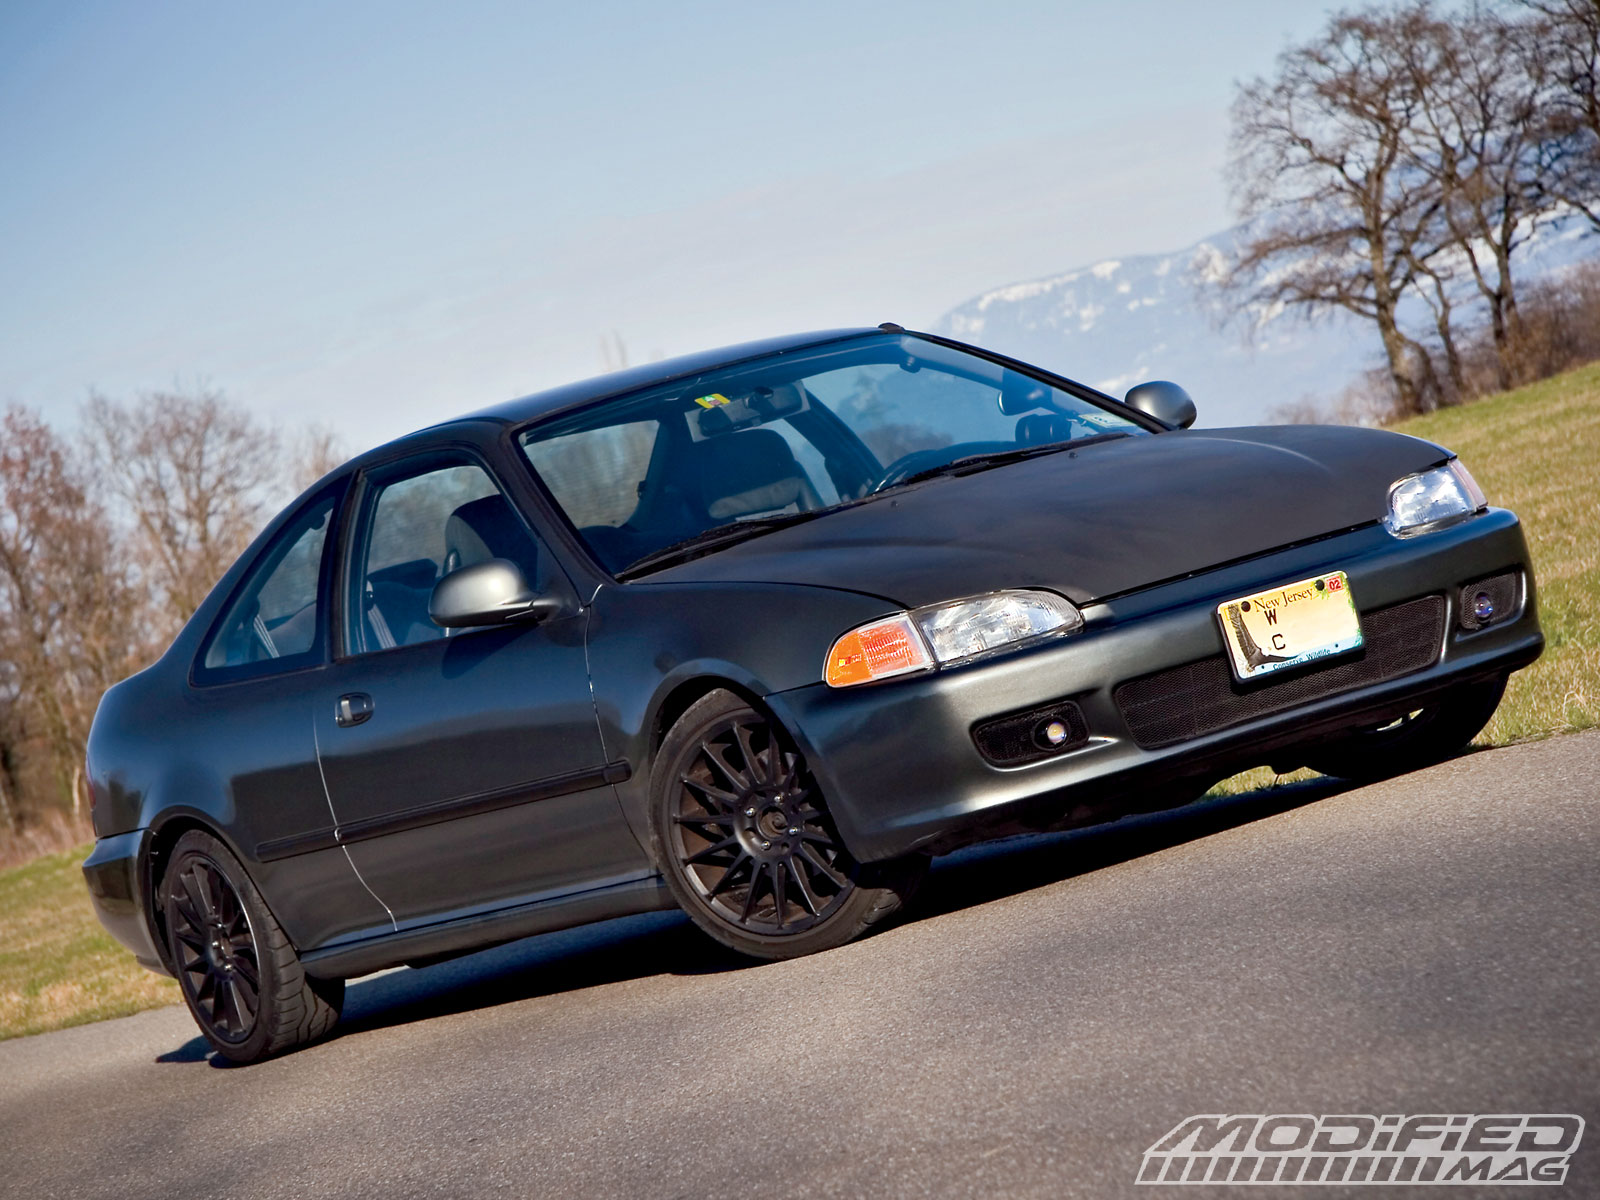 1994 Honda Civic #6